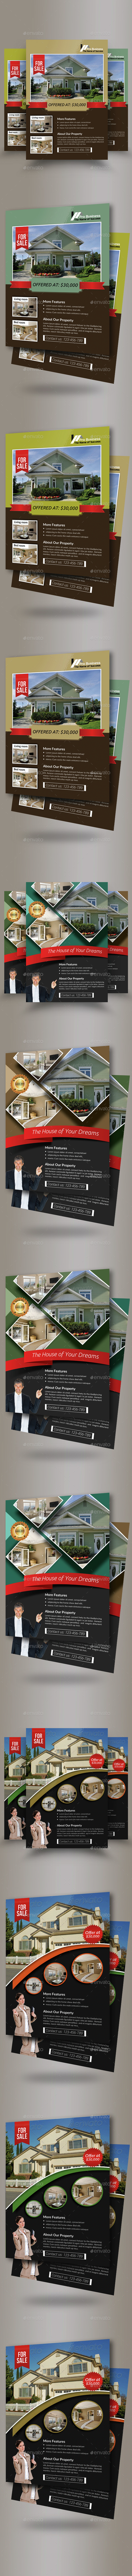 3 Real Estate Agency Flyer Bundle - Corporate Flyers